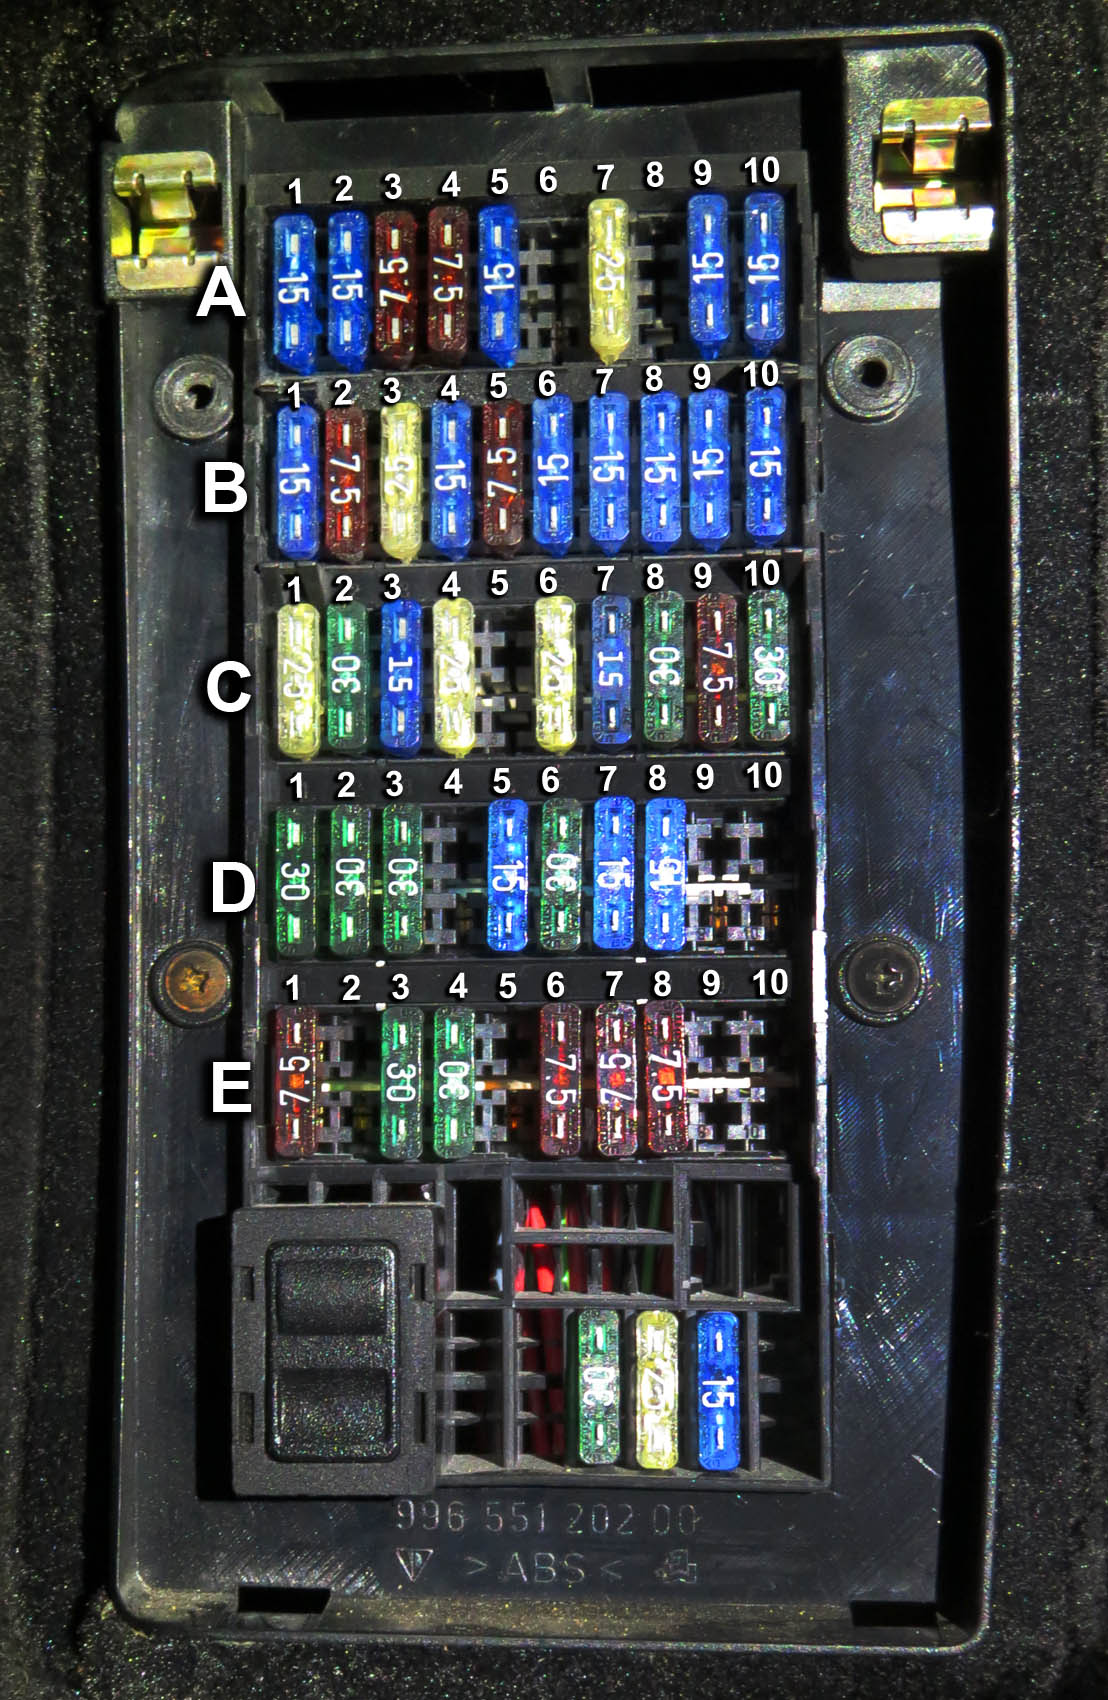 2002 Porsche Design Fuse Box Diagram